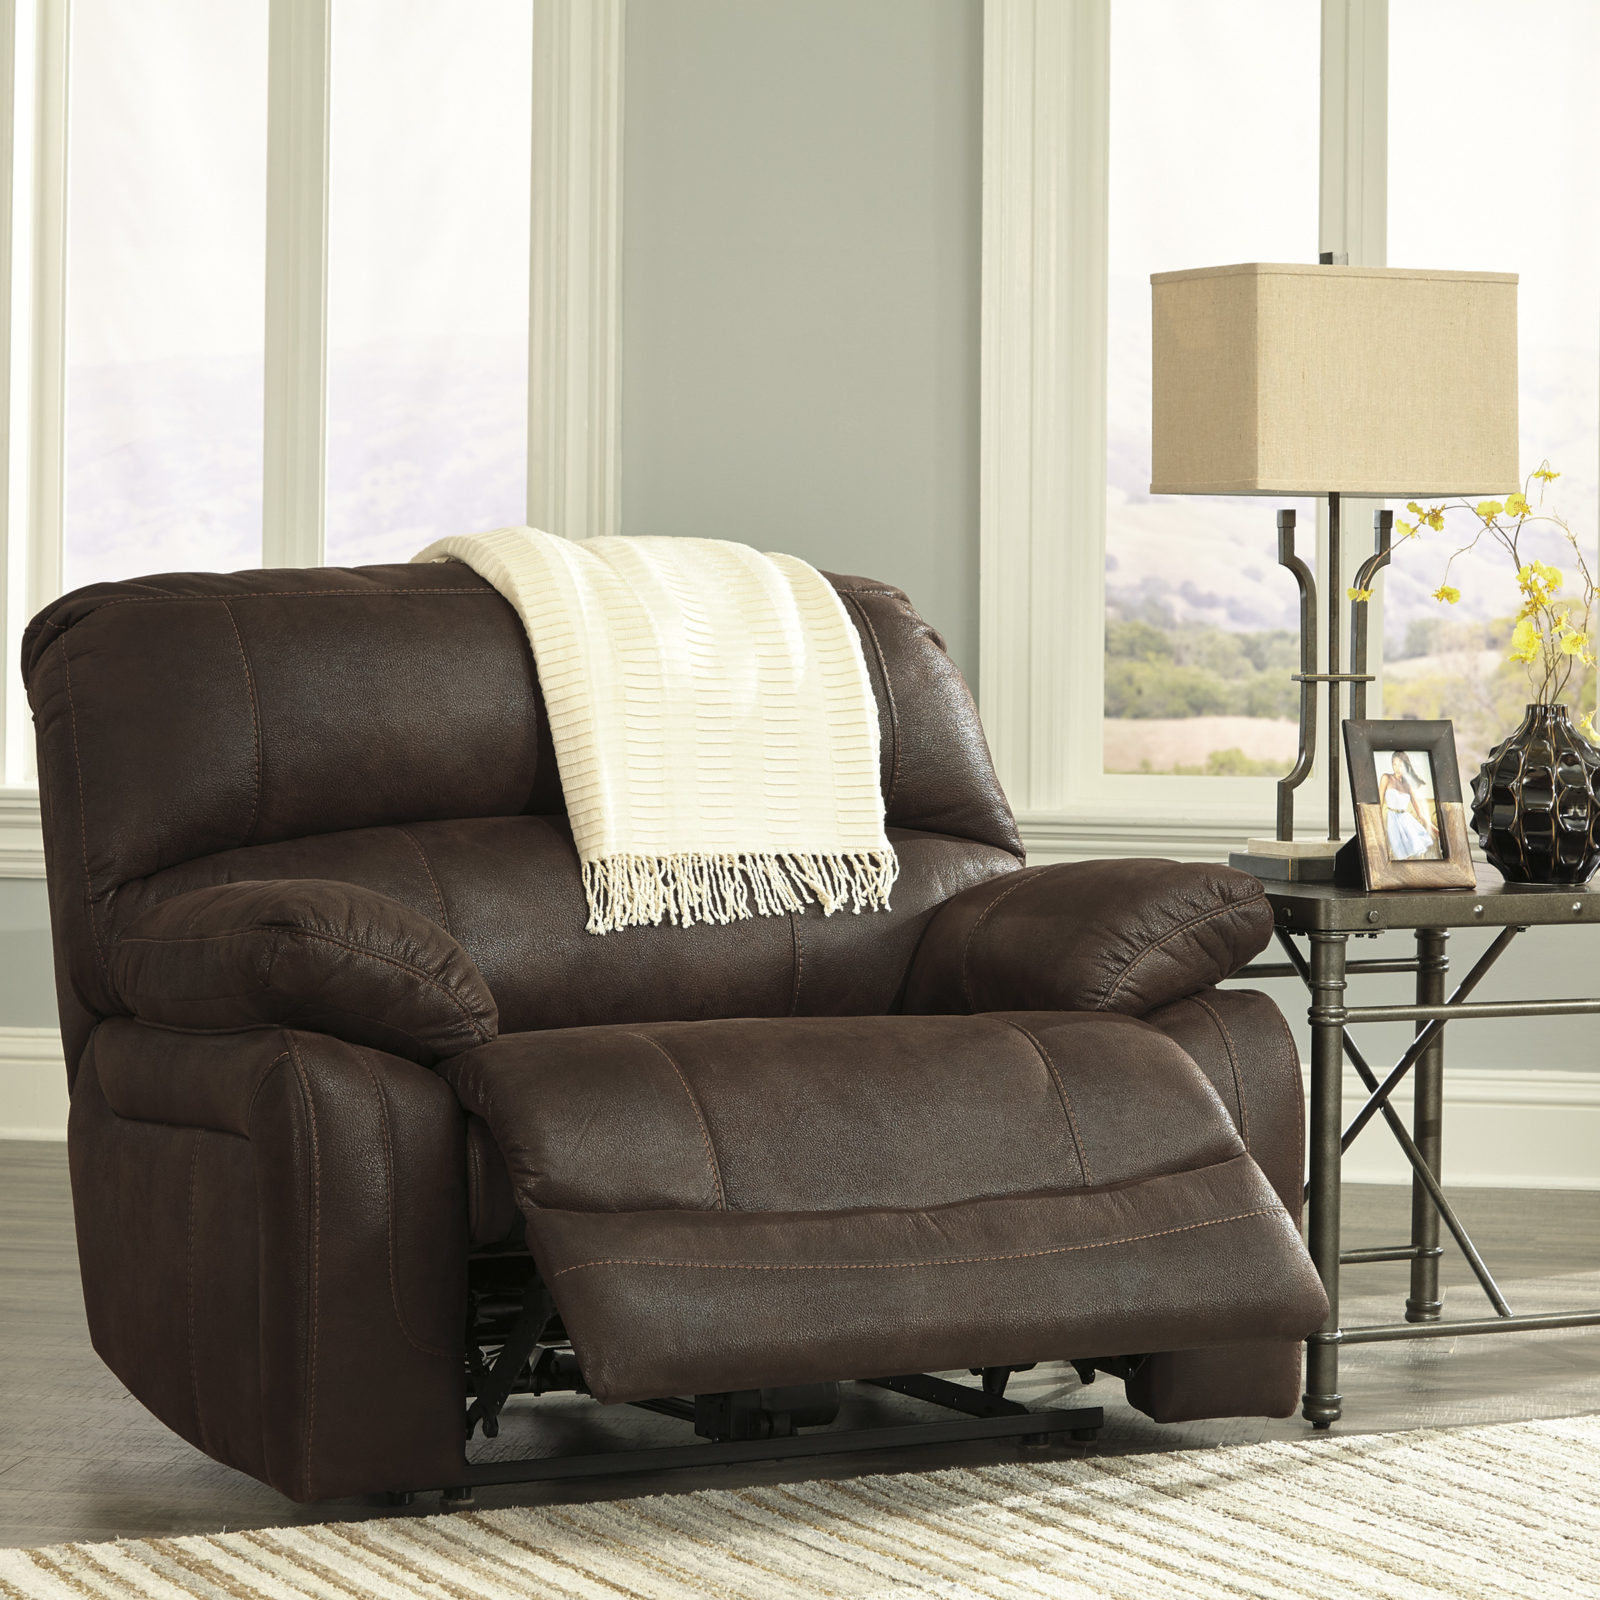 Signature Design Zavier Wide Recliner Harrington Home Furniture